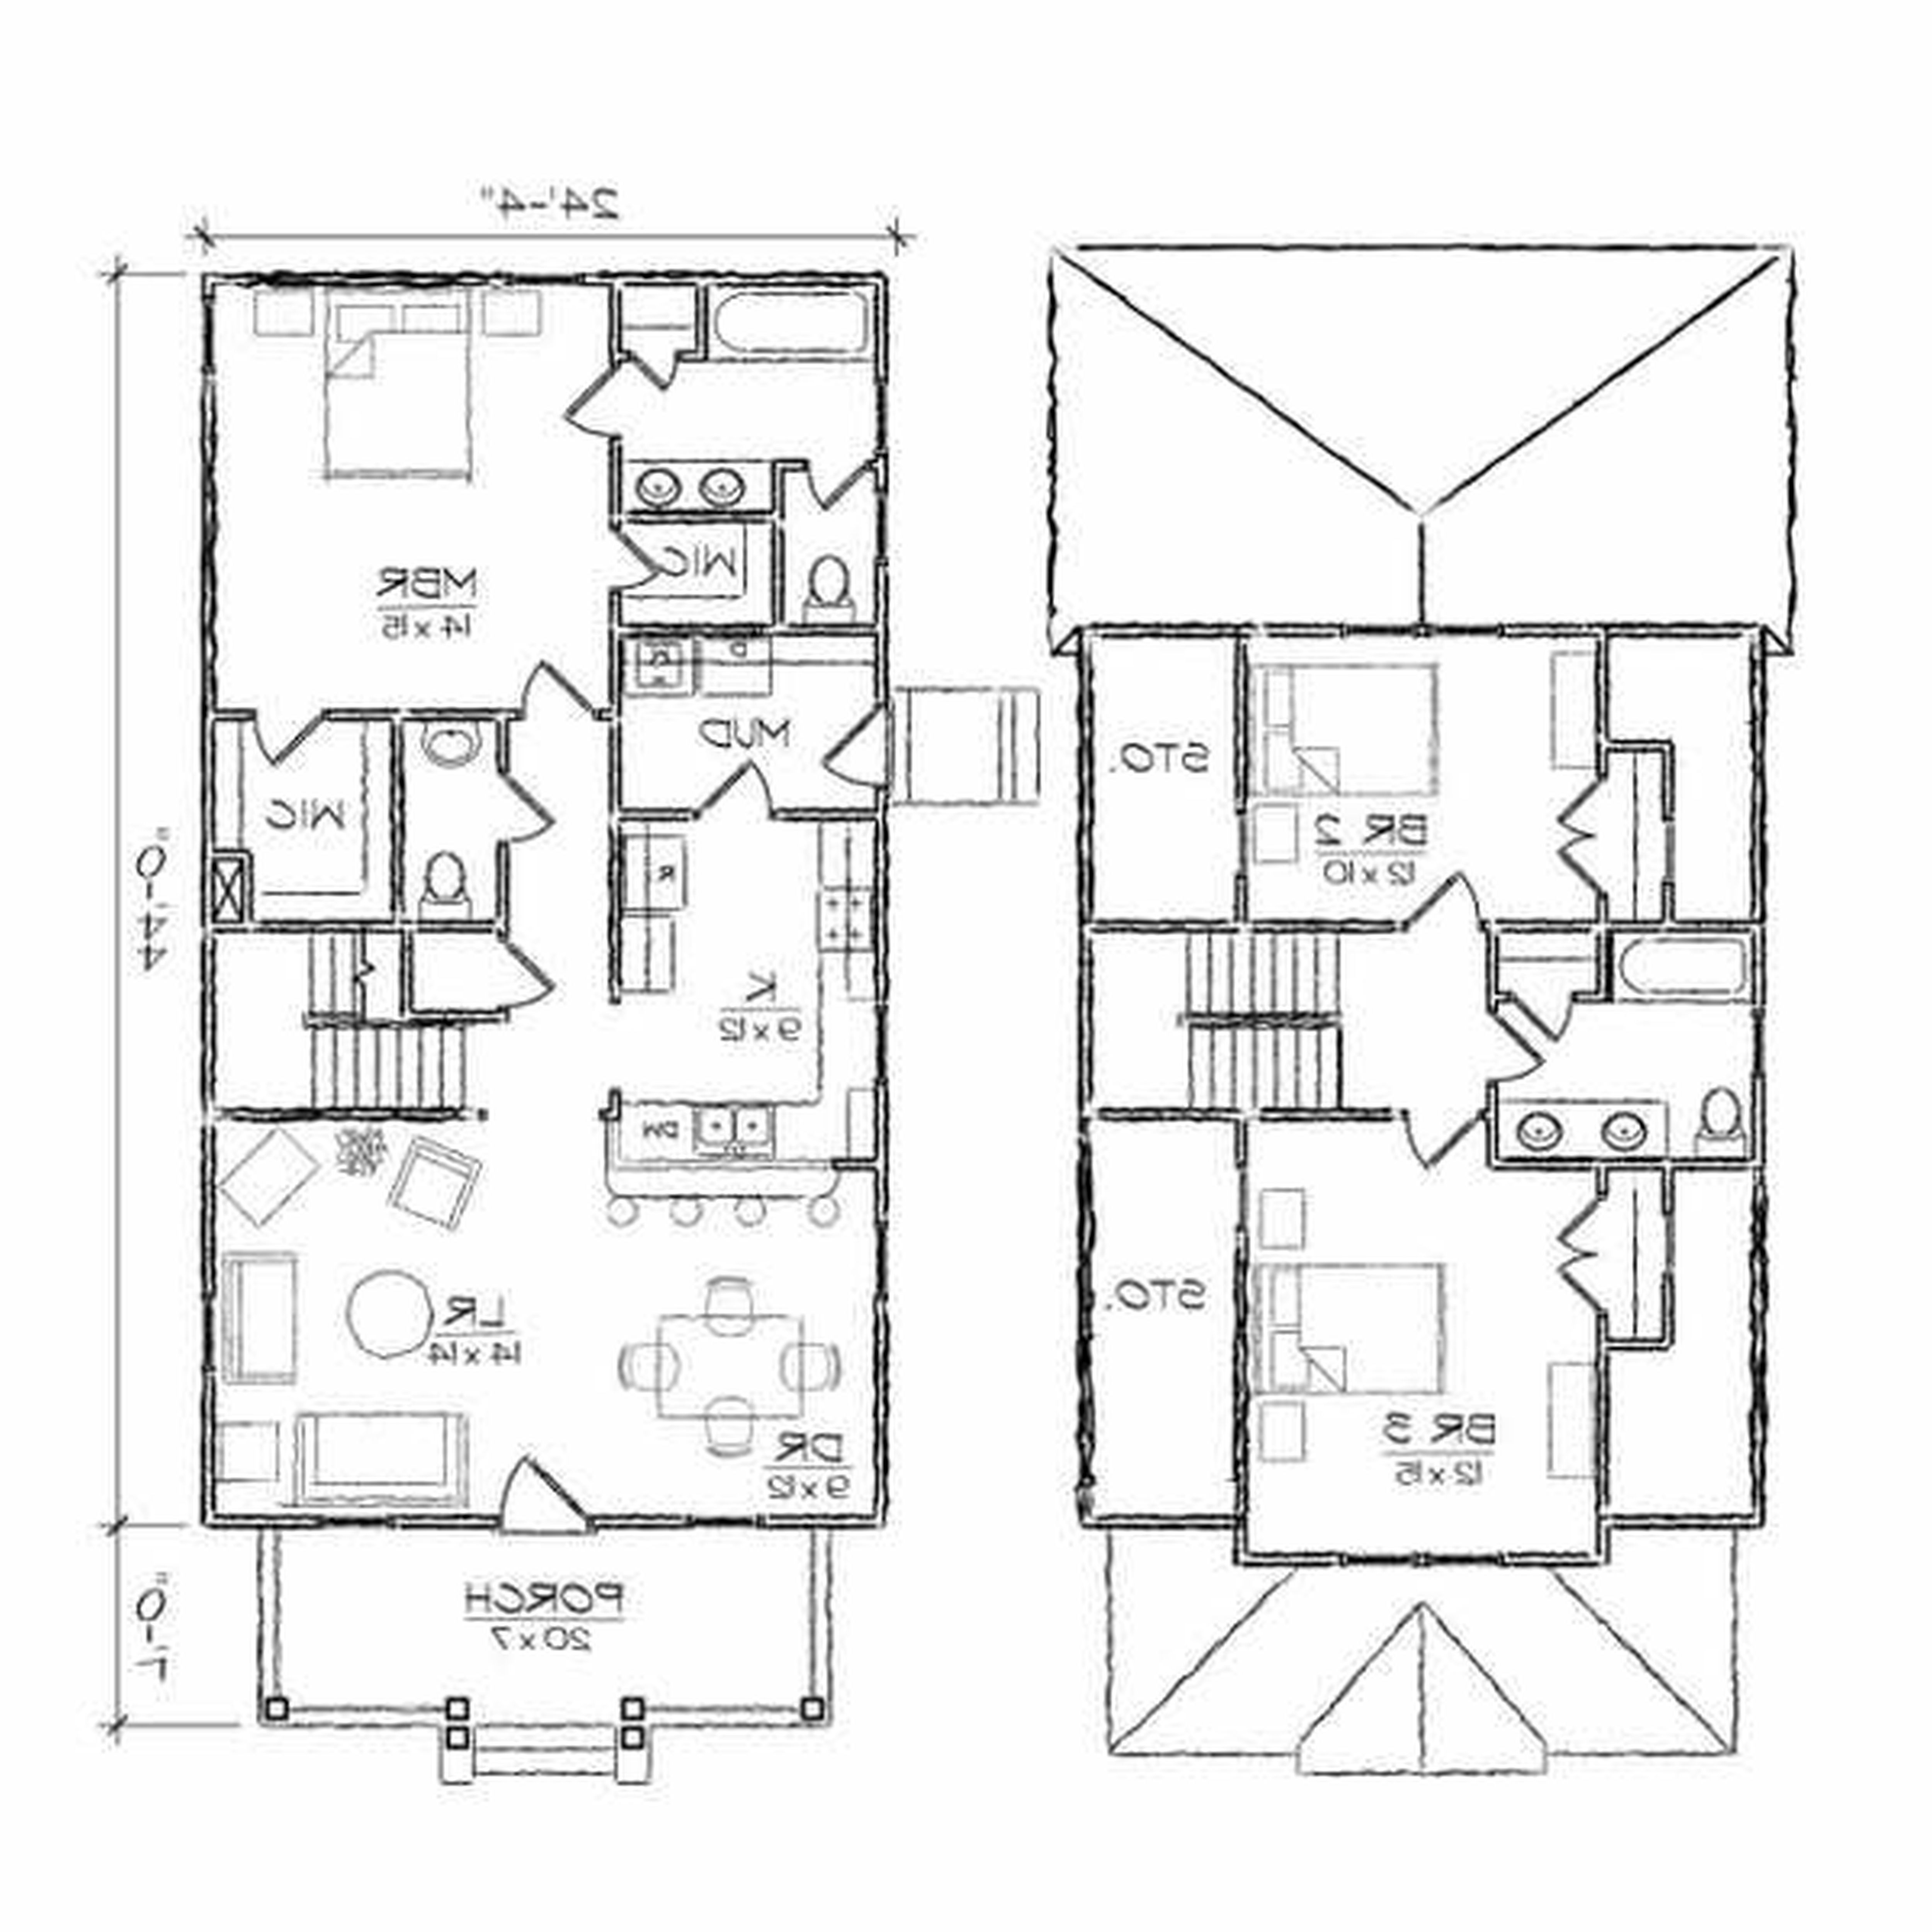 5000x5000 simple modern house sketch - Home Plan Sketch